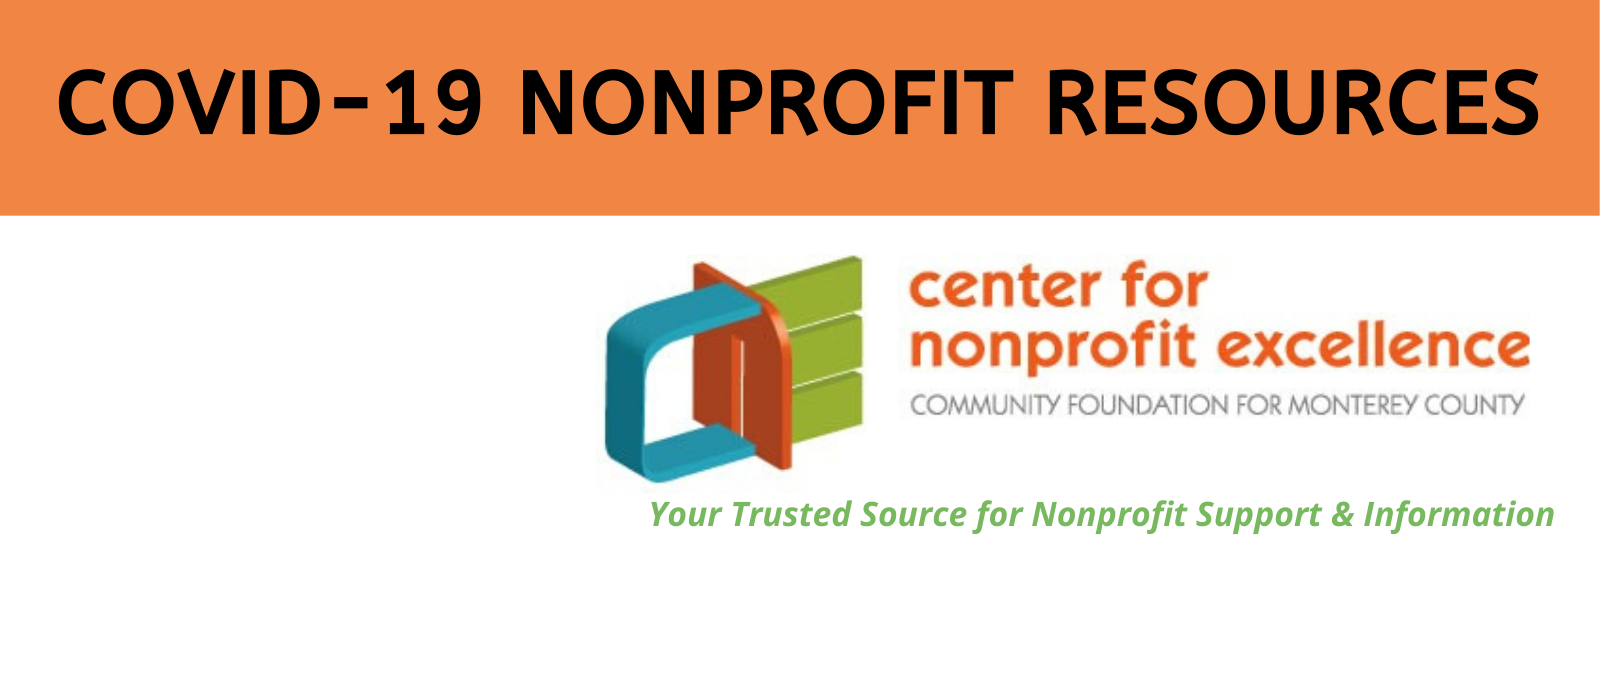 COVID-19 Resources for Nonprofits